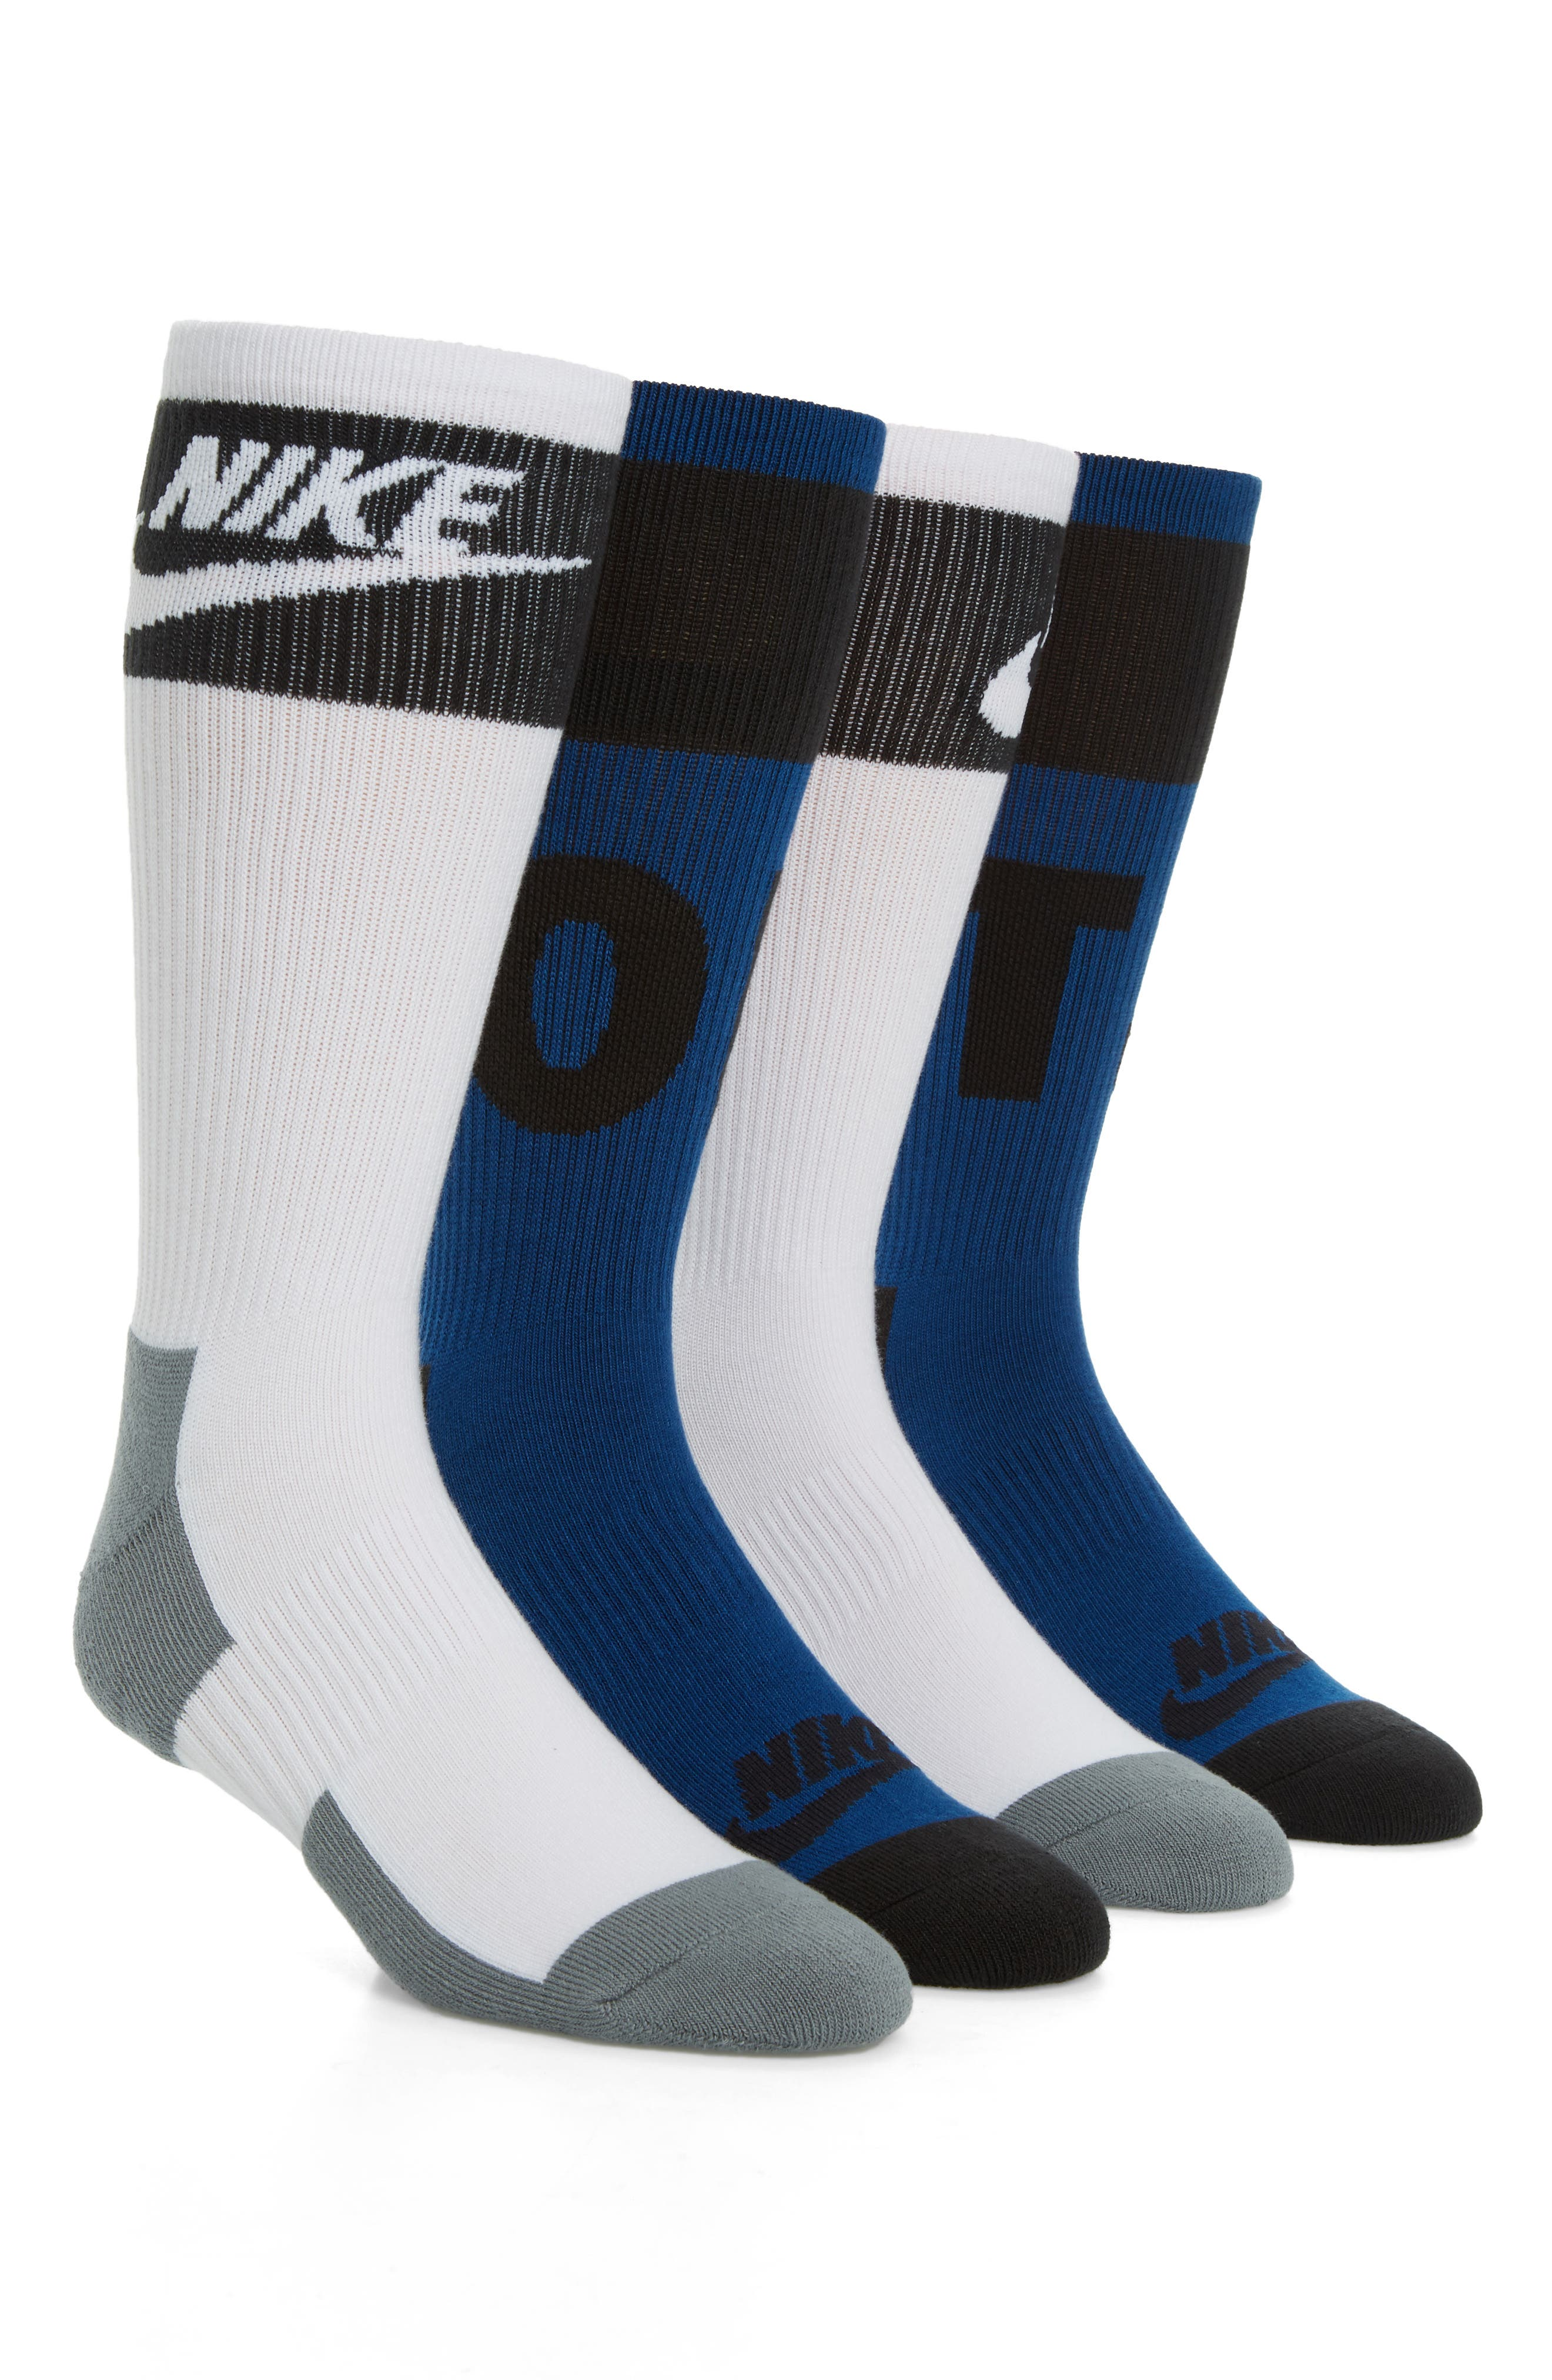 HBR 2-Pack Socks,                             Main thumbnail 2, color,